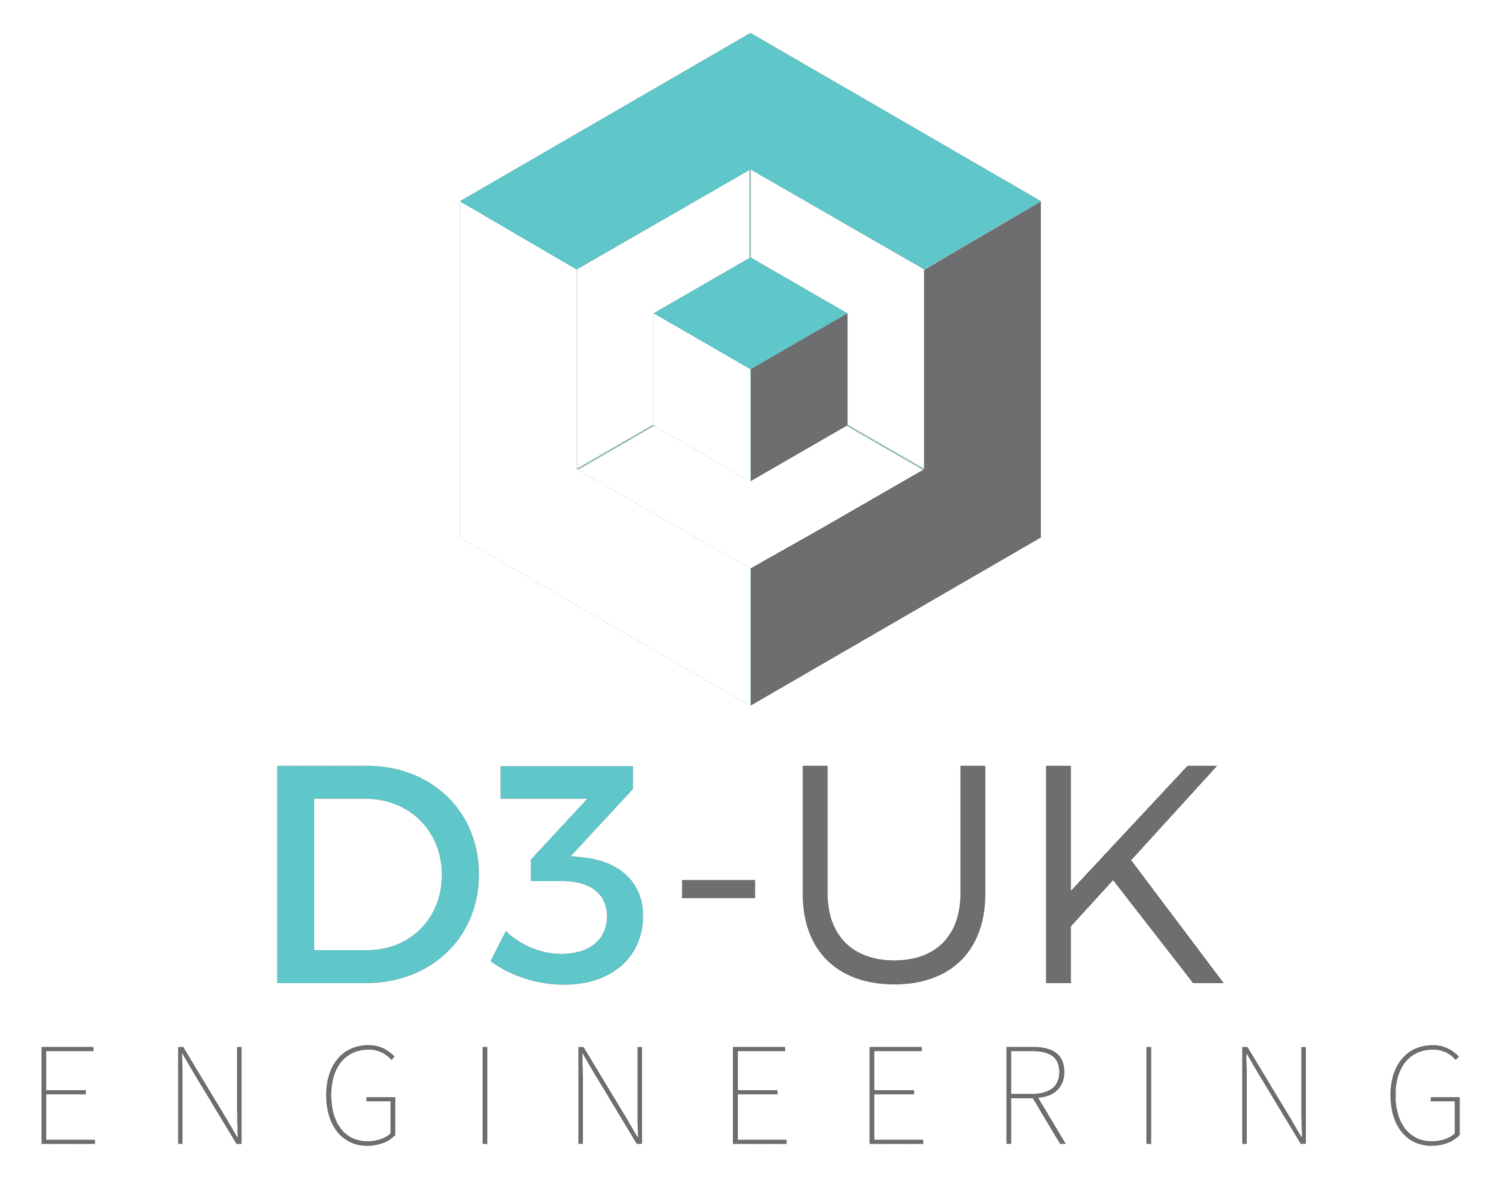 D3-UK engineering